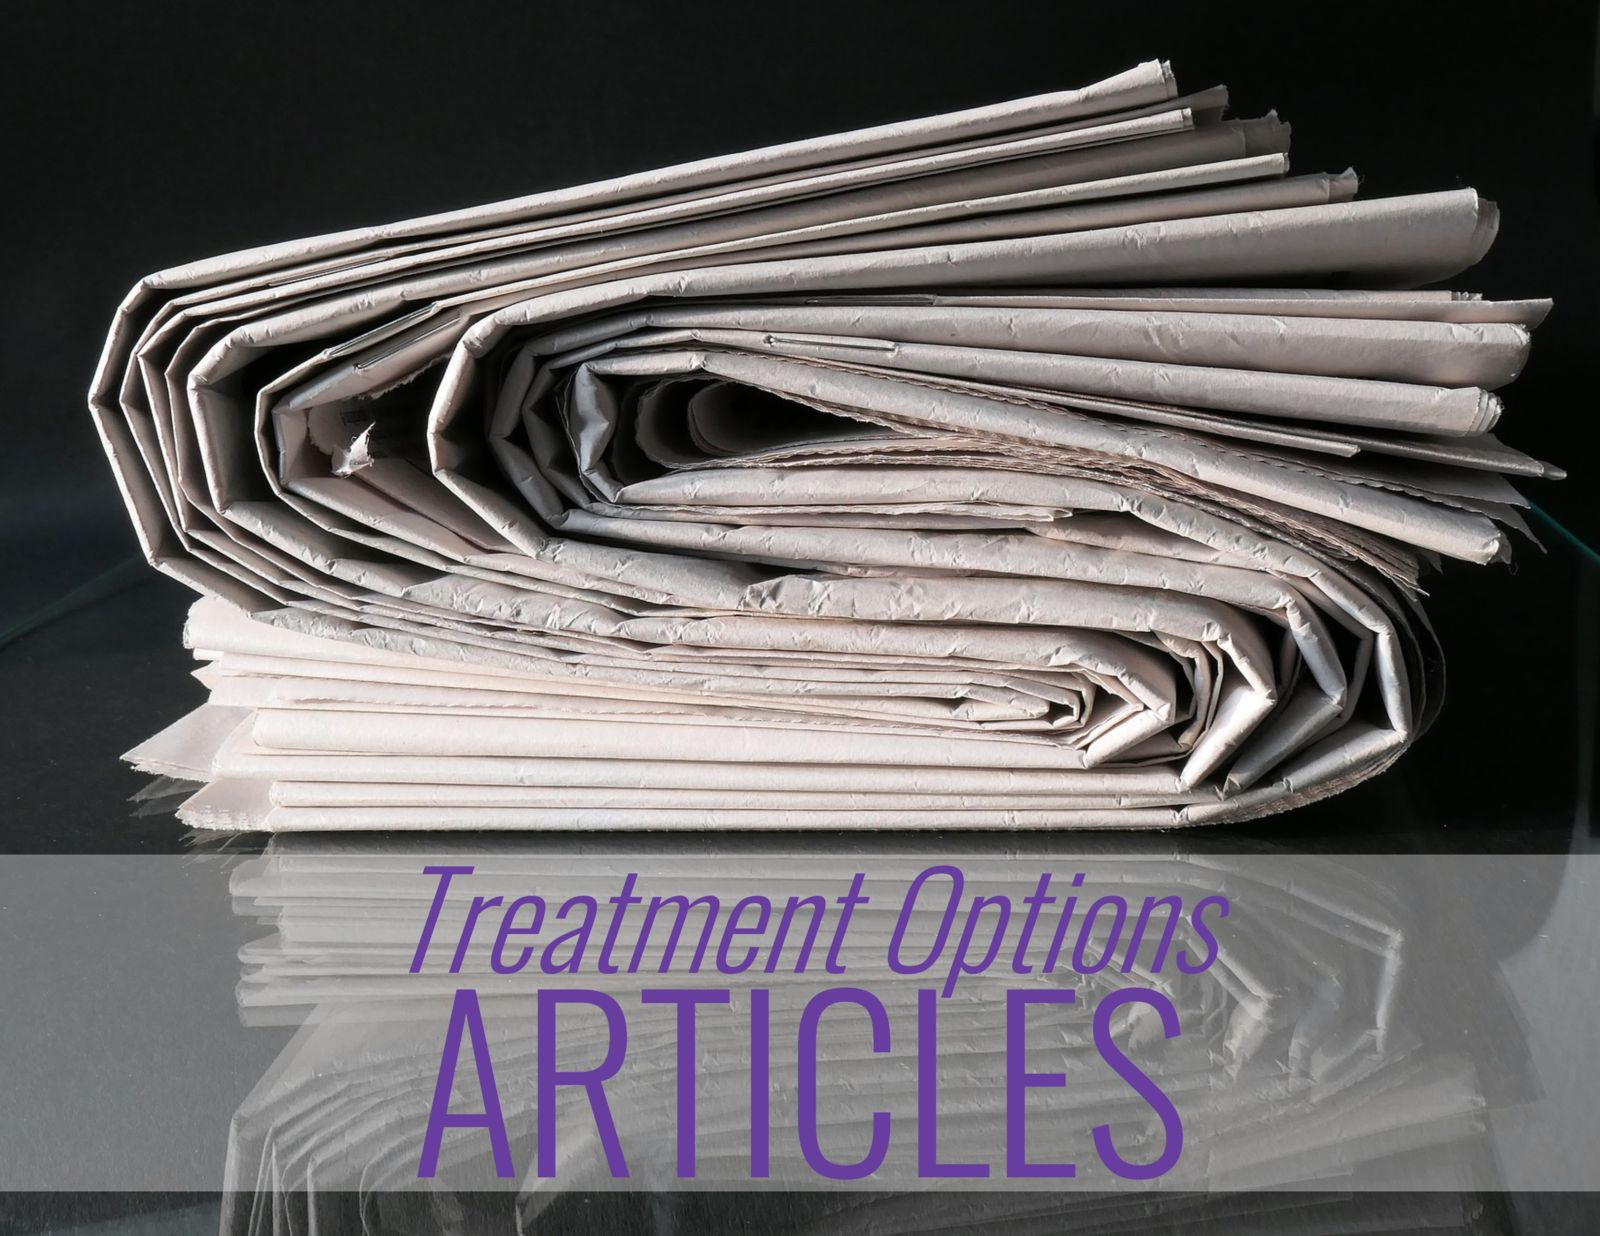 newspapers and the words: Treatment Options Articles